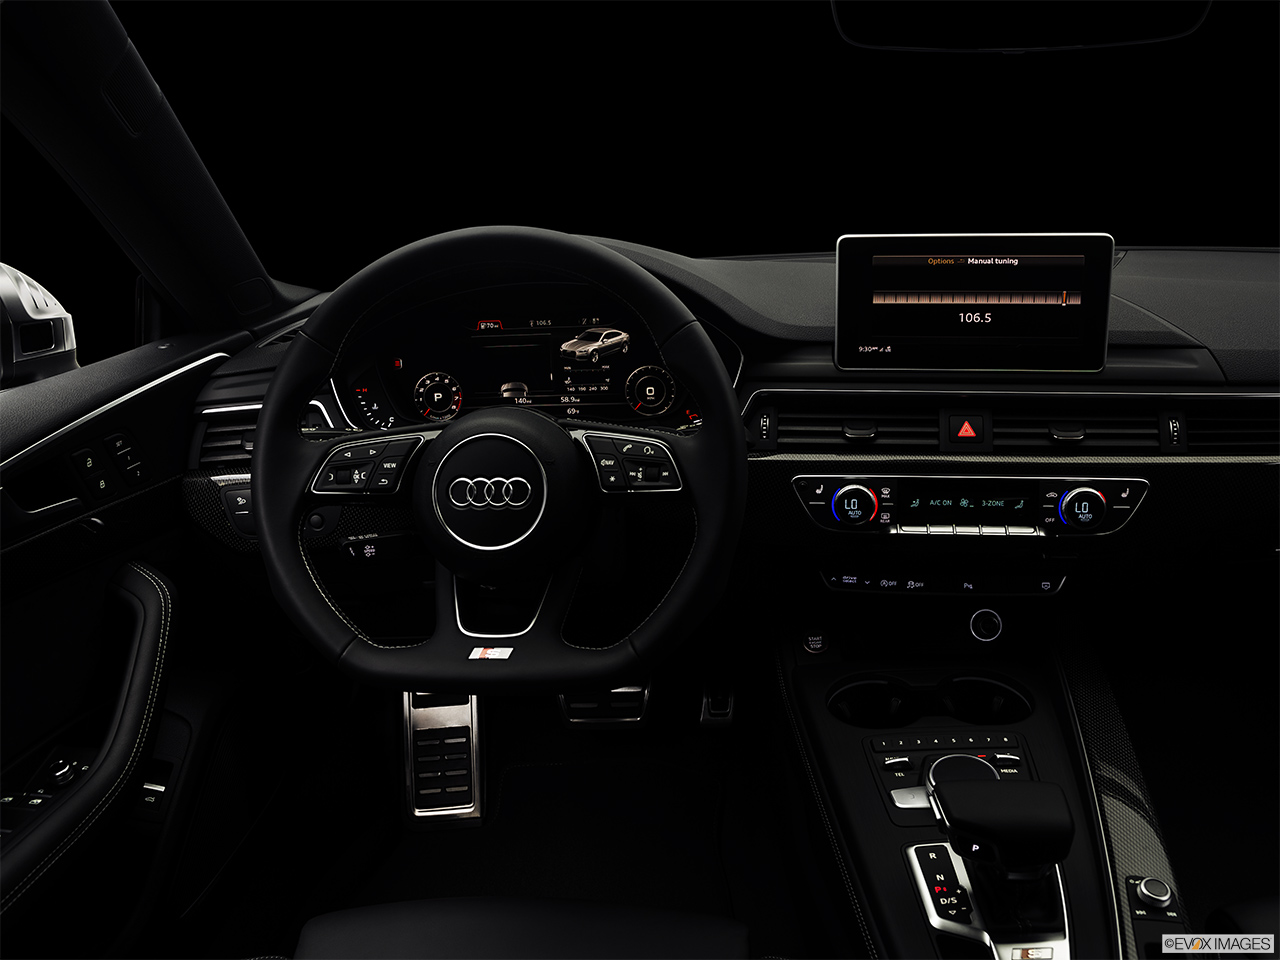 "2019 Audi S5 Sportback Premium Plus 3.0 TFSI Centered wide dash shot - ""night"" shot."